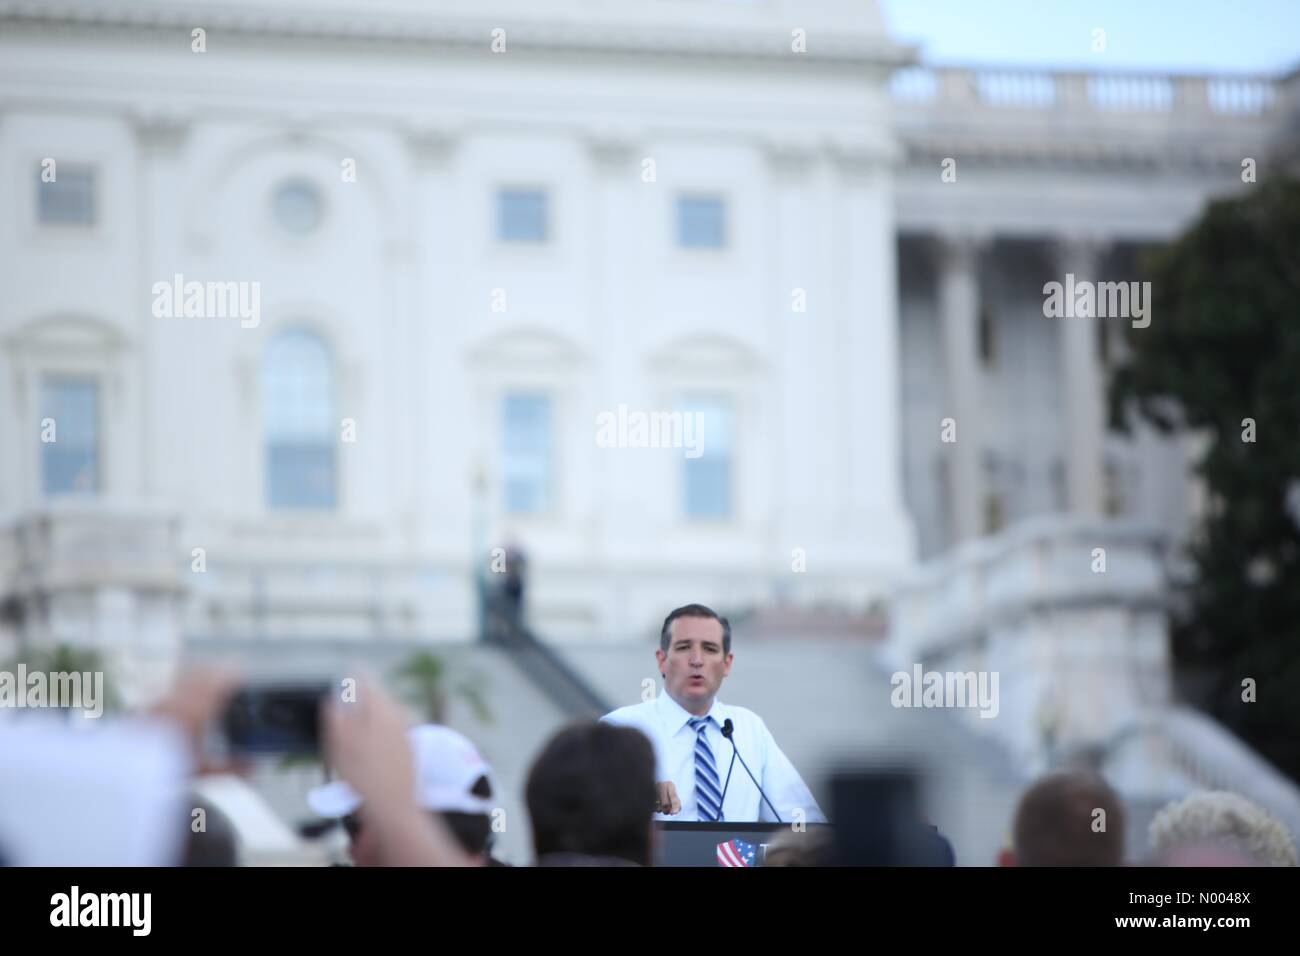 Washington, DC, USA. 09th Sep, 2015. Ted Cruz speaks at the rally against the Iran nuclear deal on the West Lawn Stock Photo